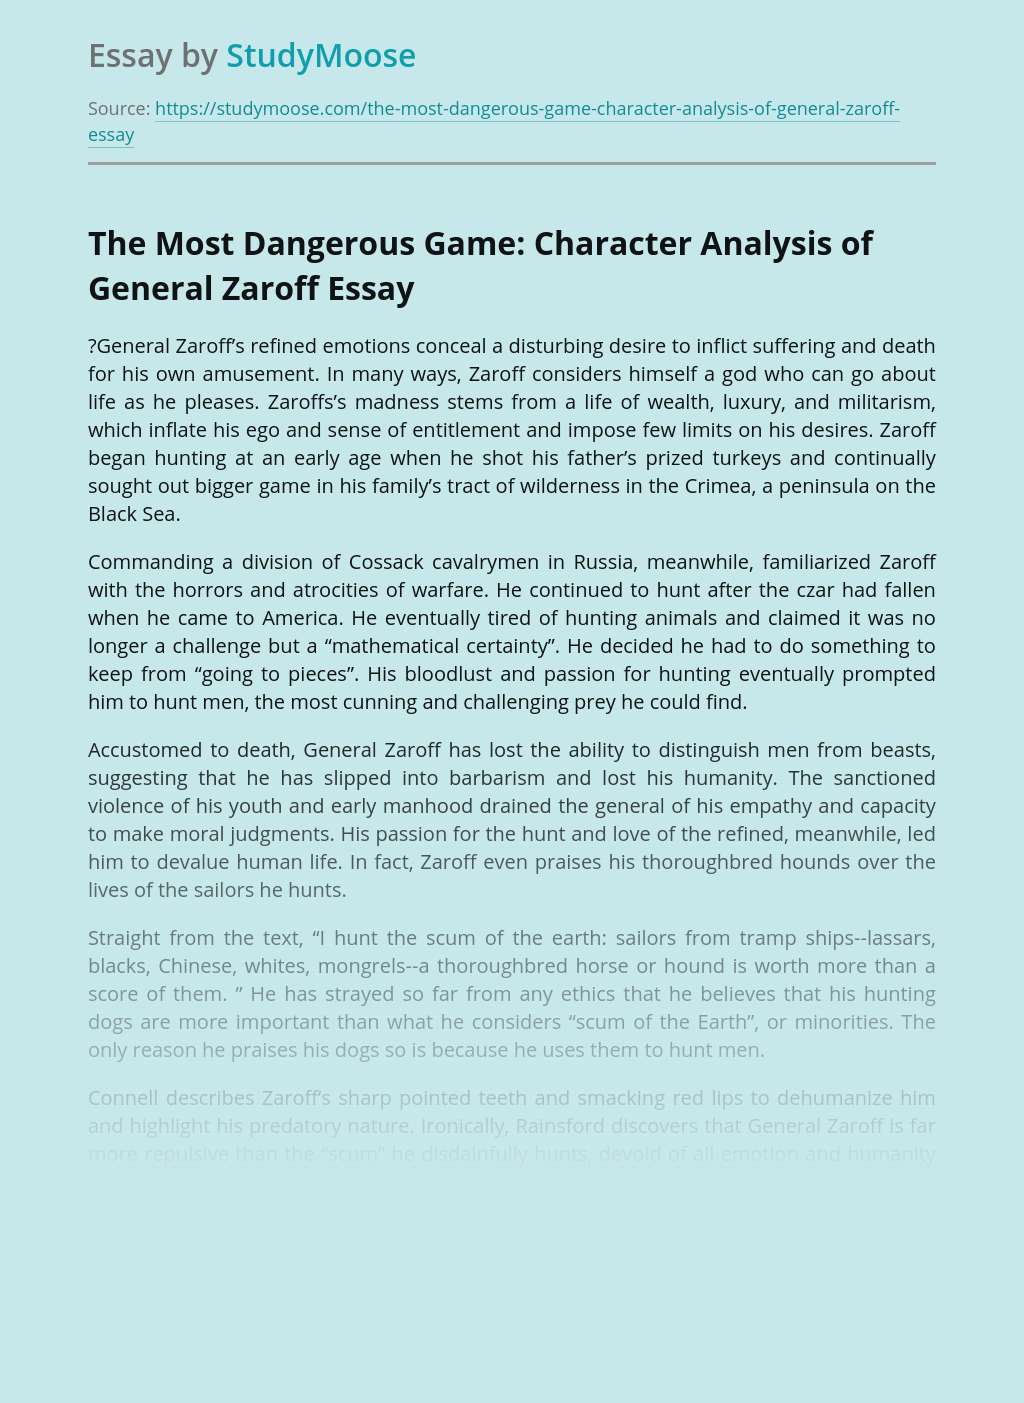 The Most Dangerous Game: Character Analysis of General Zaroff